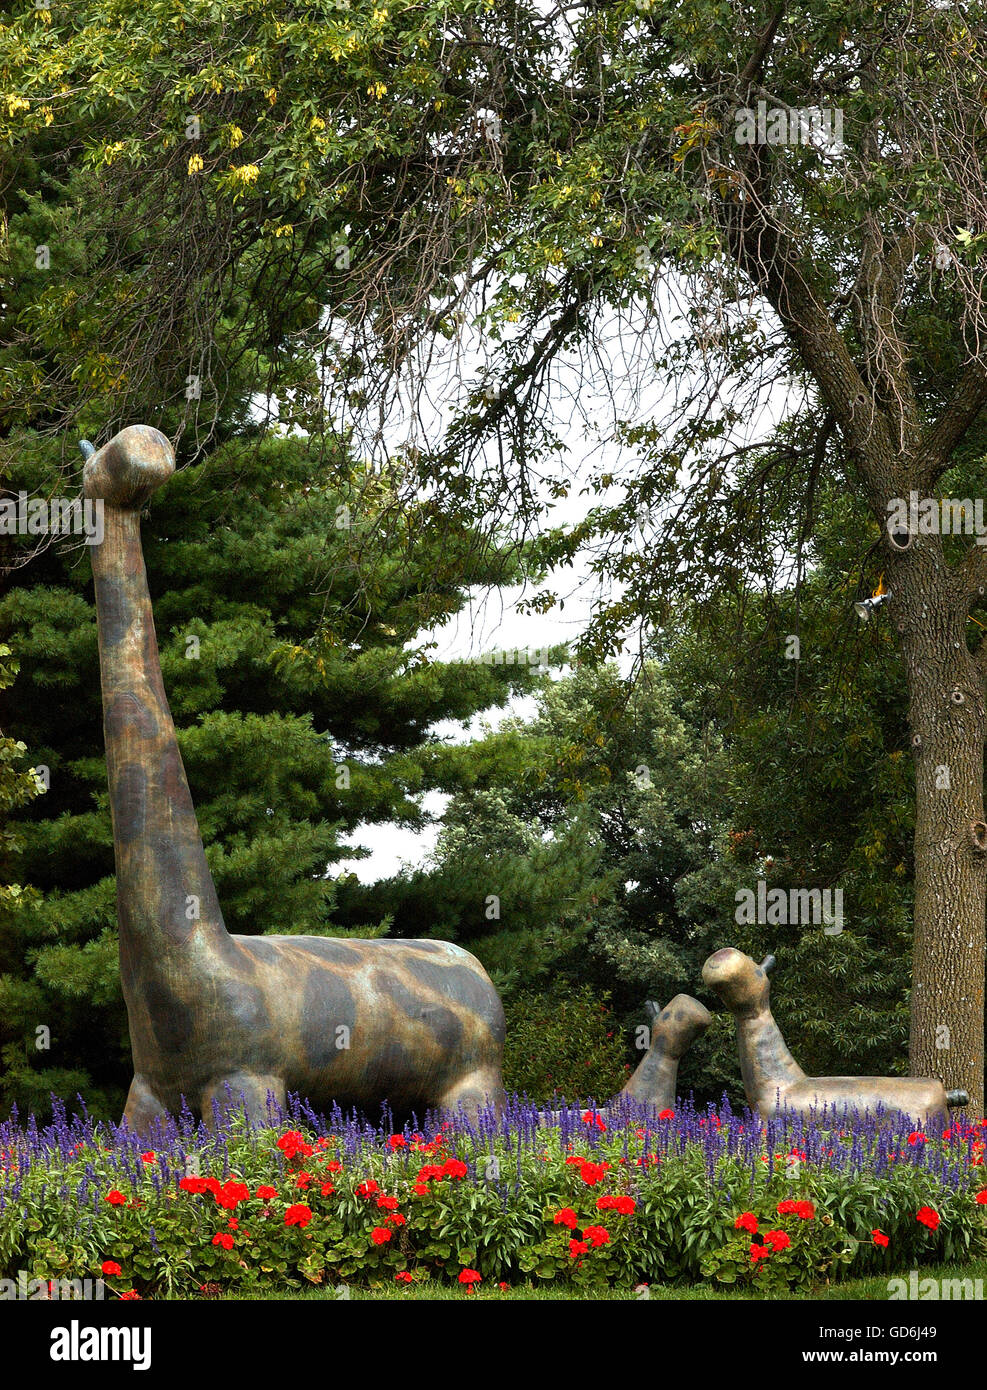 Molded / Sculpted Giraffe Display At Des Moines Botanic Garden, Iowa